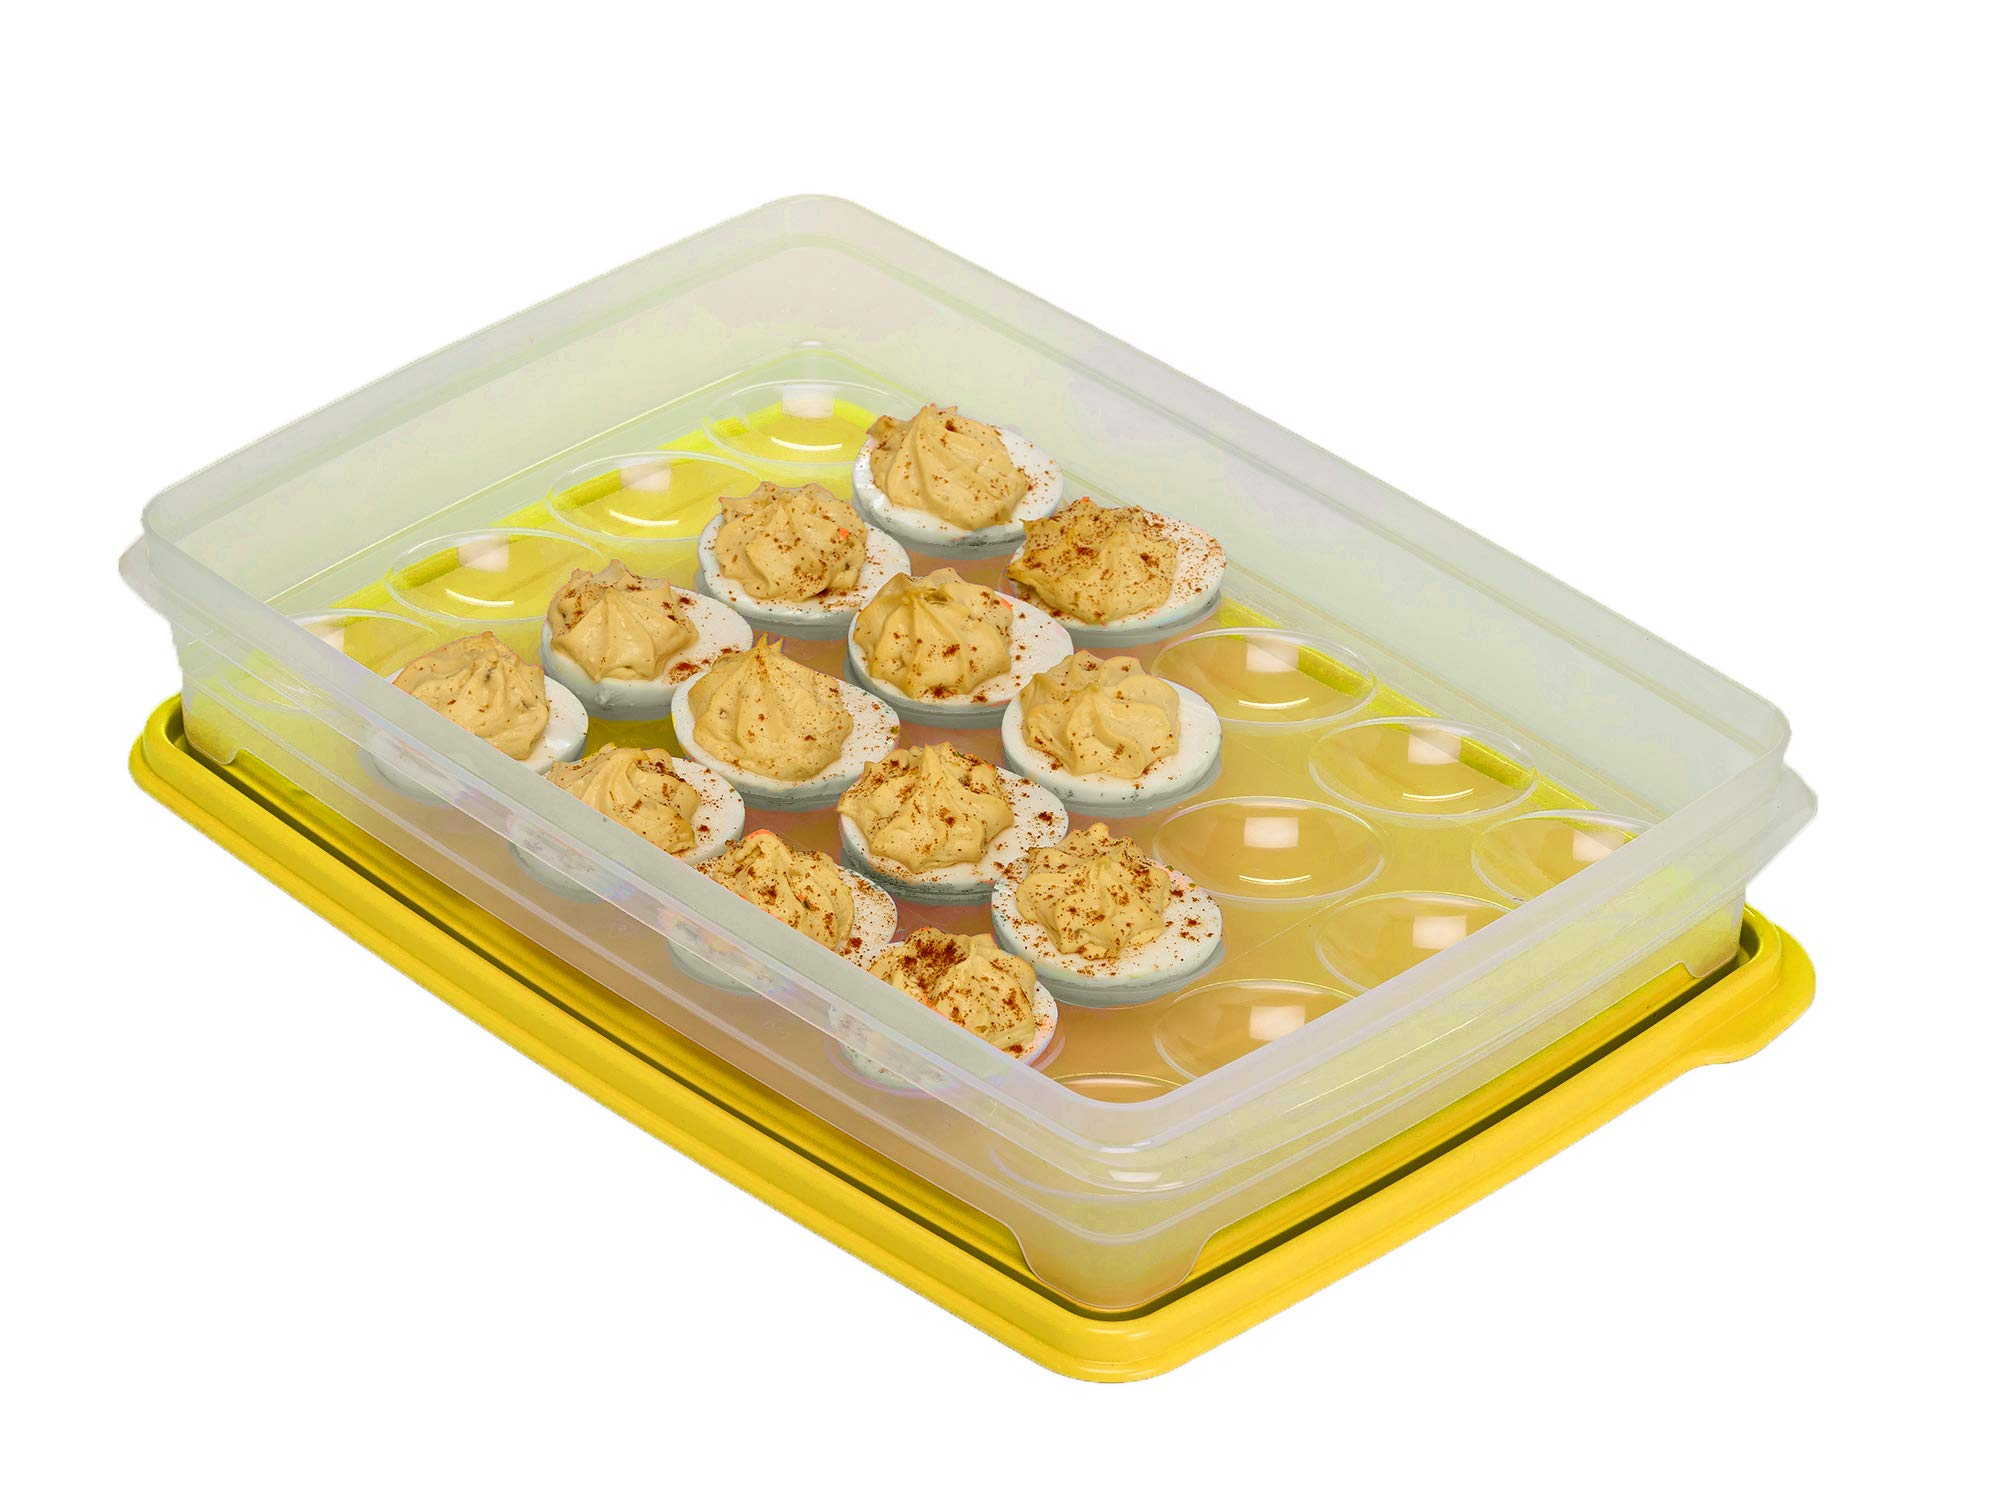 Egg Holder for Refrigerator, Deviled Egg Tray Carrier With Lid- Container for 24 Eggs